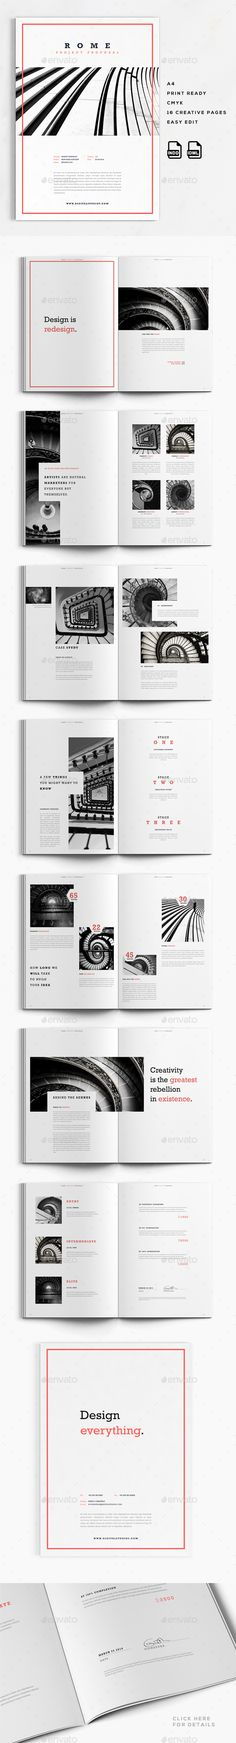 Rome | A4 Creative Business Proposal